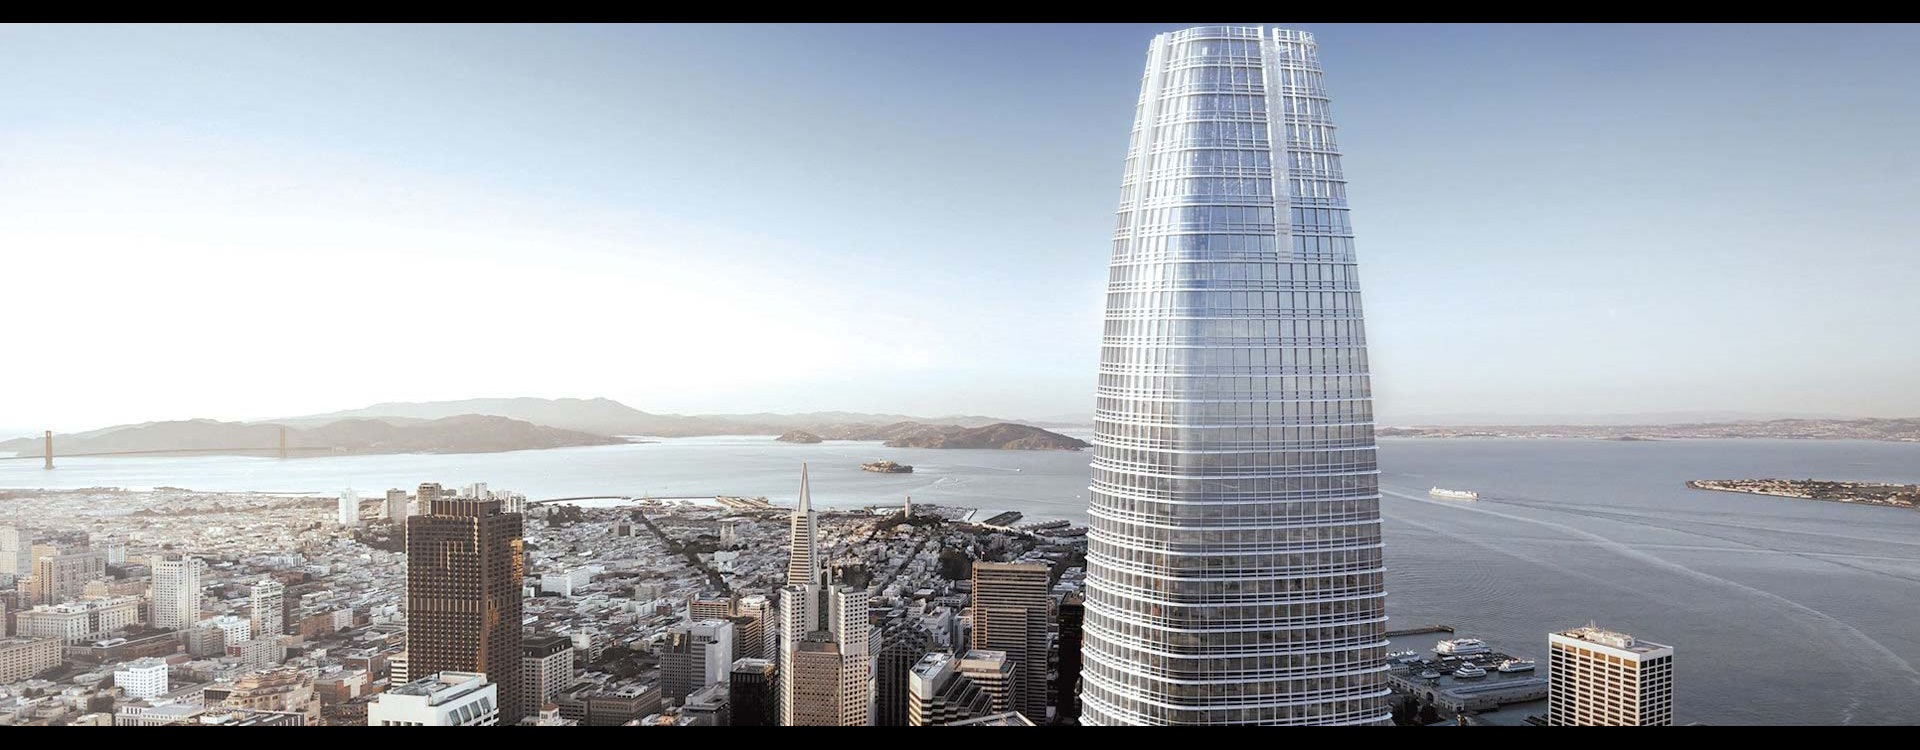 bnr-Salesforce-Tower-High-Rise